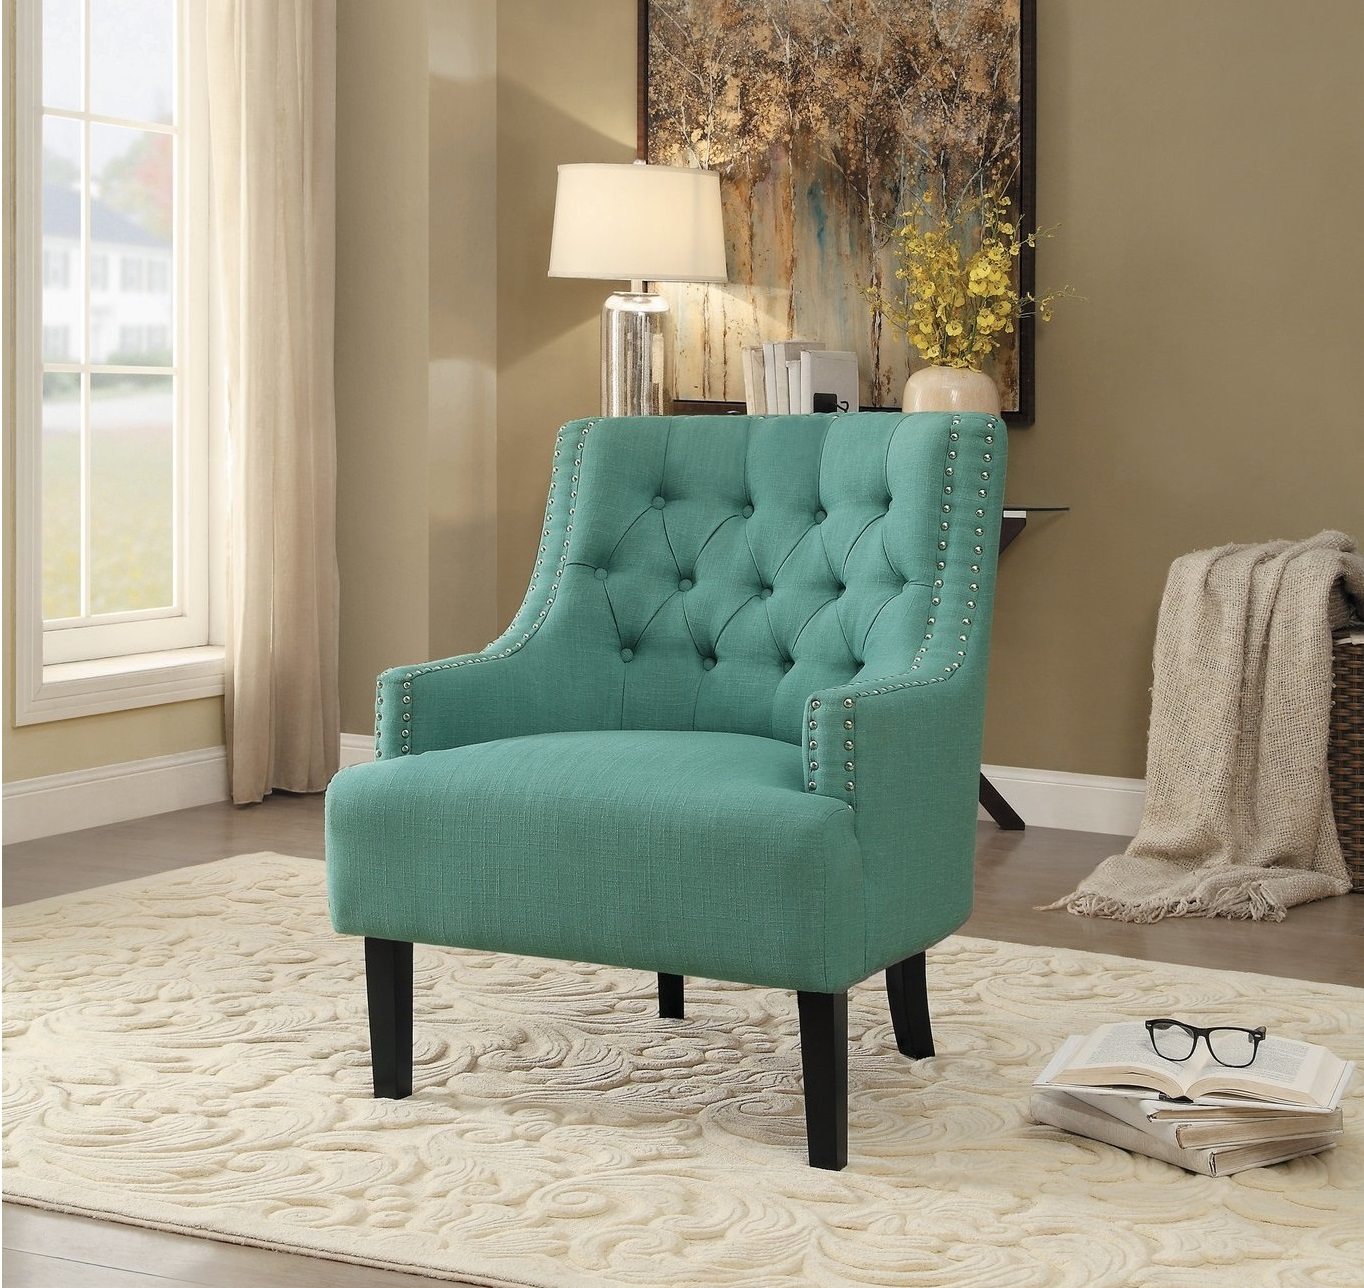 Home Furniture, Accent Chair